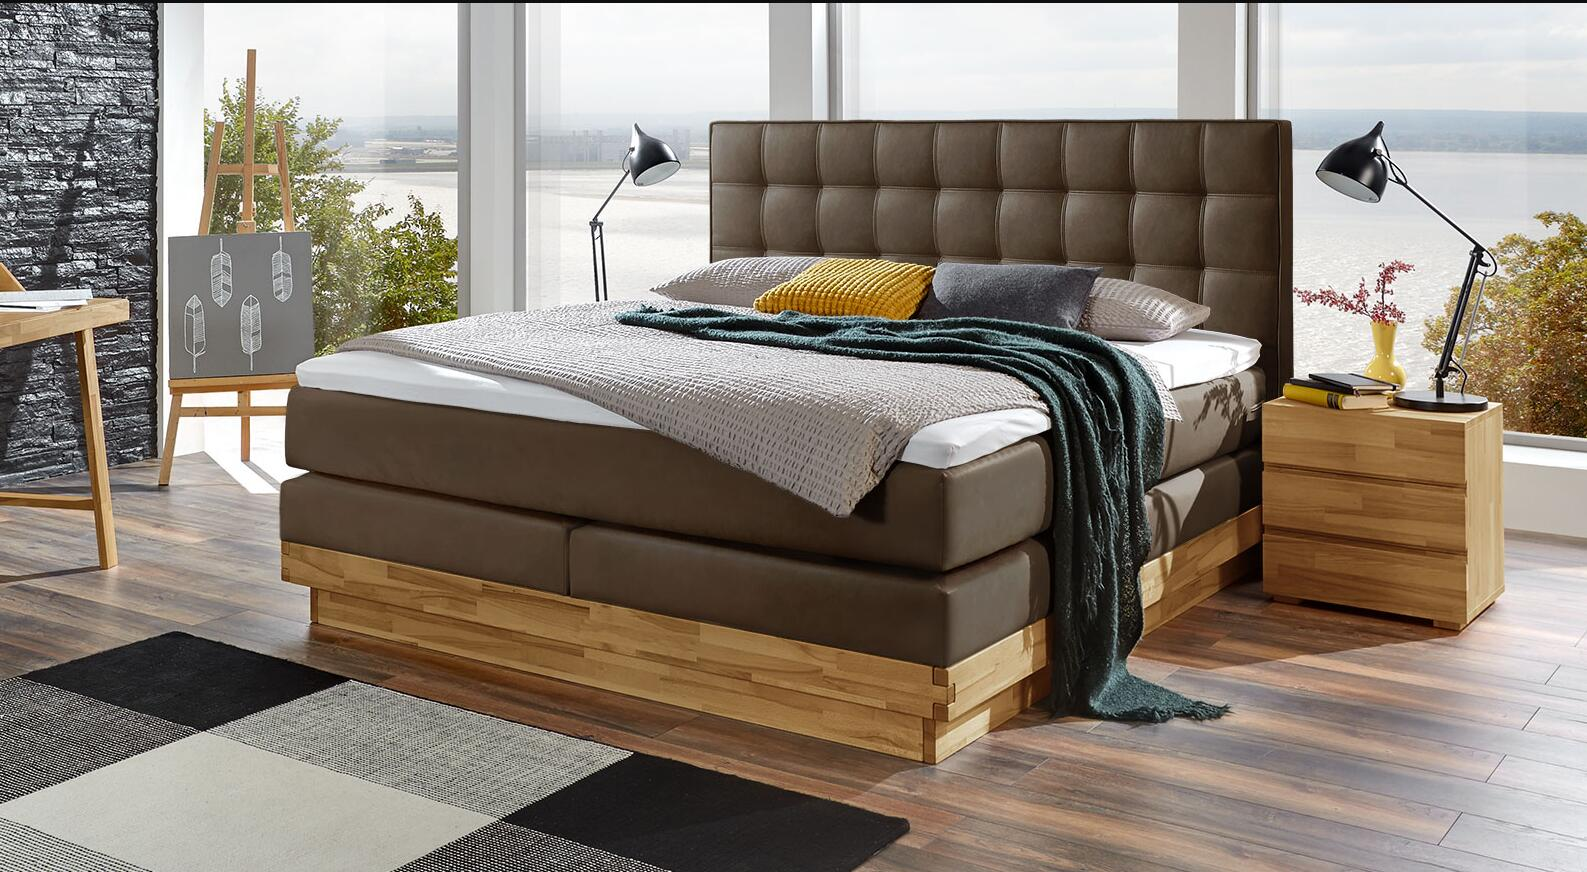 What do the hardness specifications mean for box spring beds